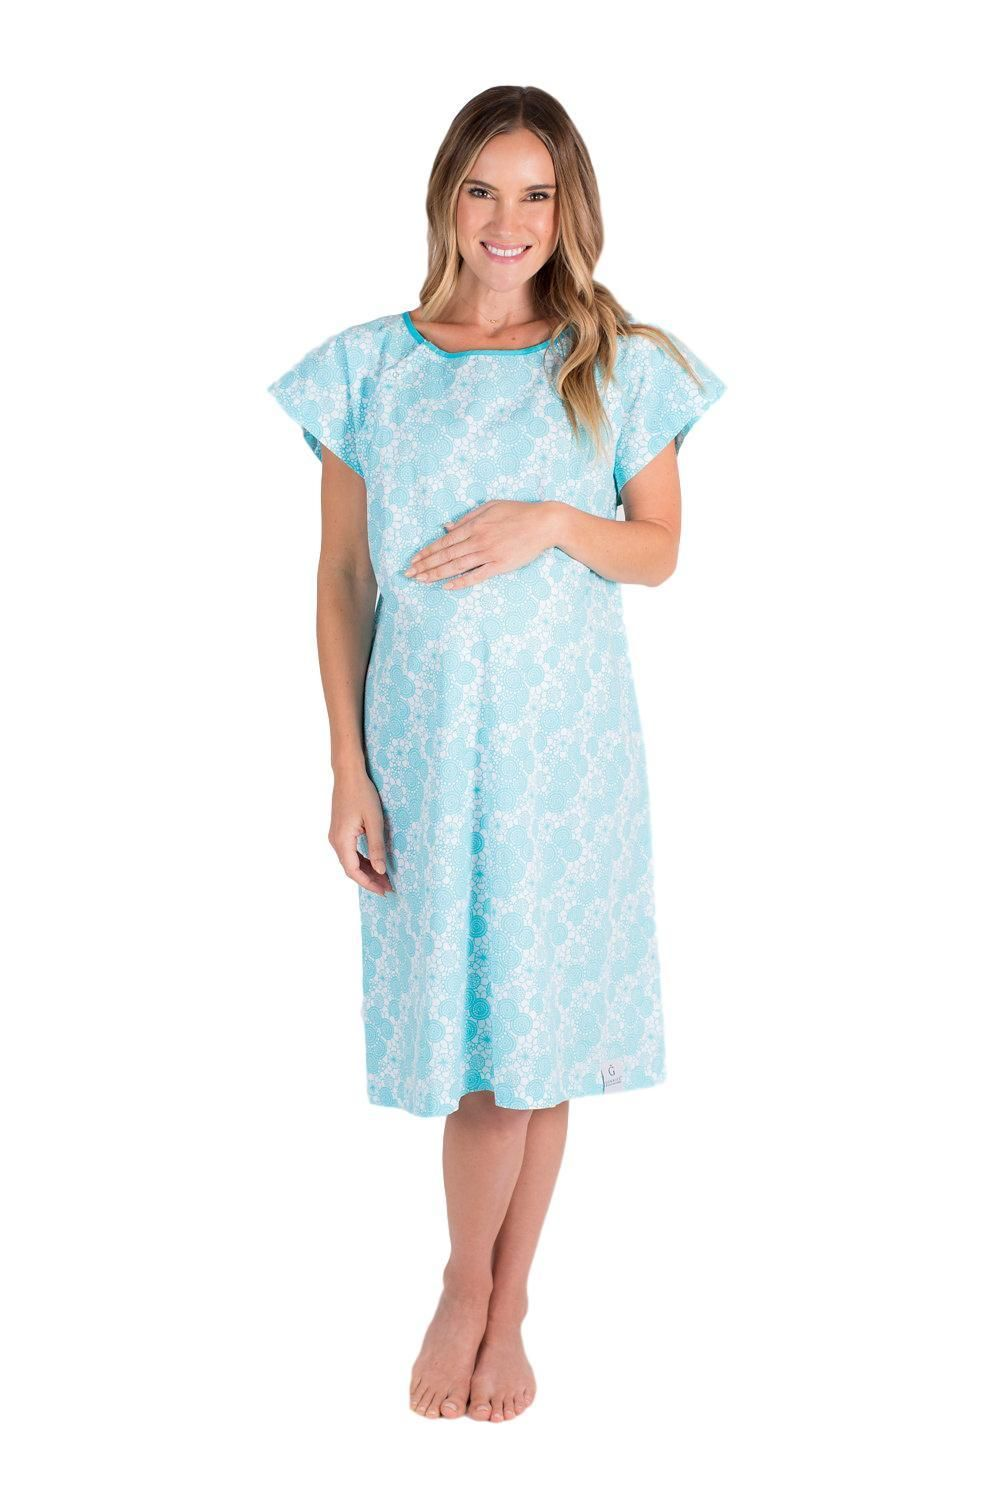 Celeste Gownie Maternity Delivery Labor Hospital Birthing Gown ...